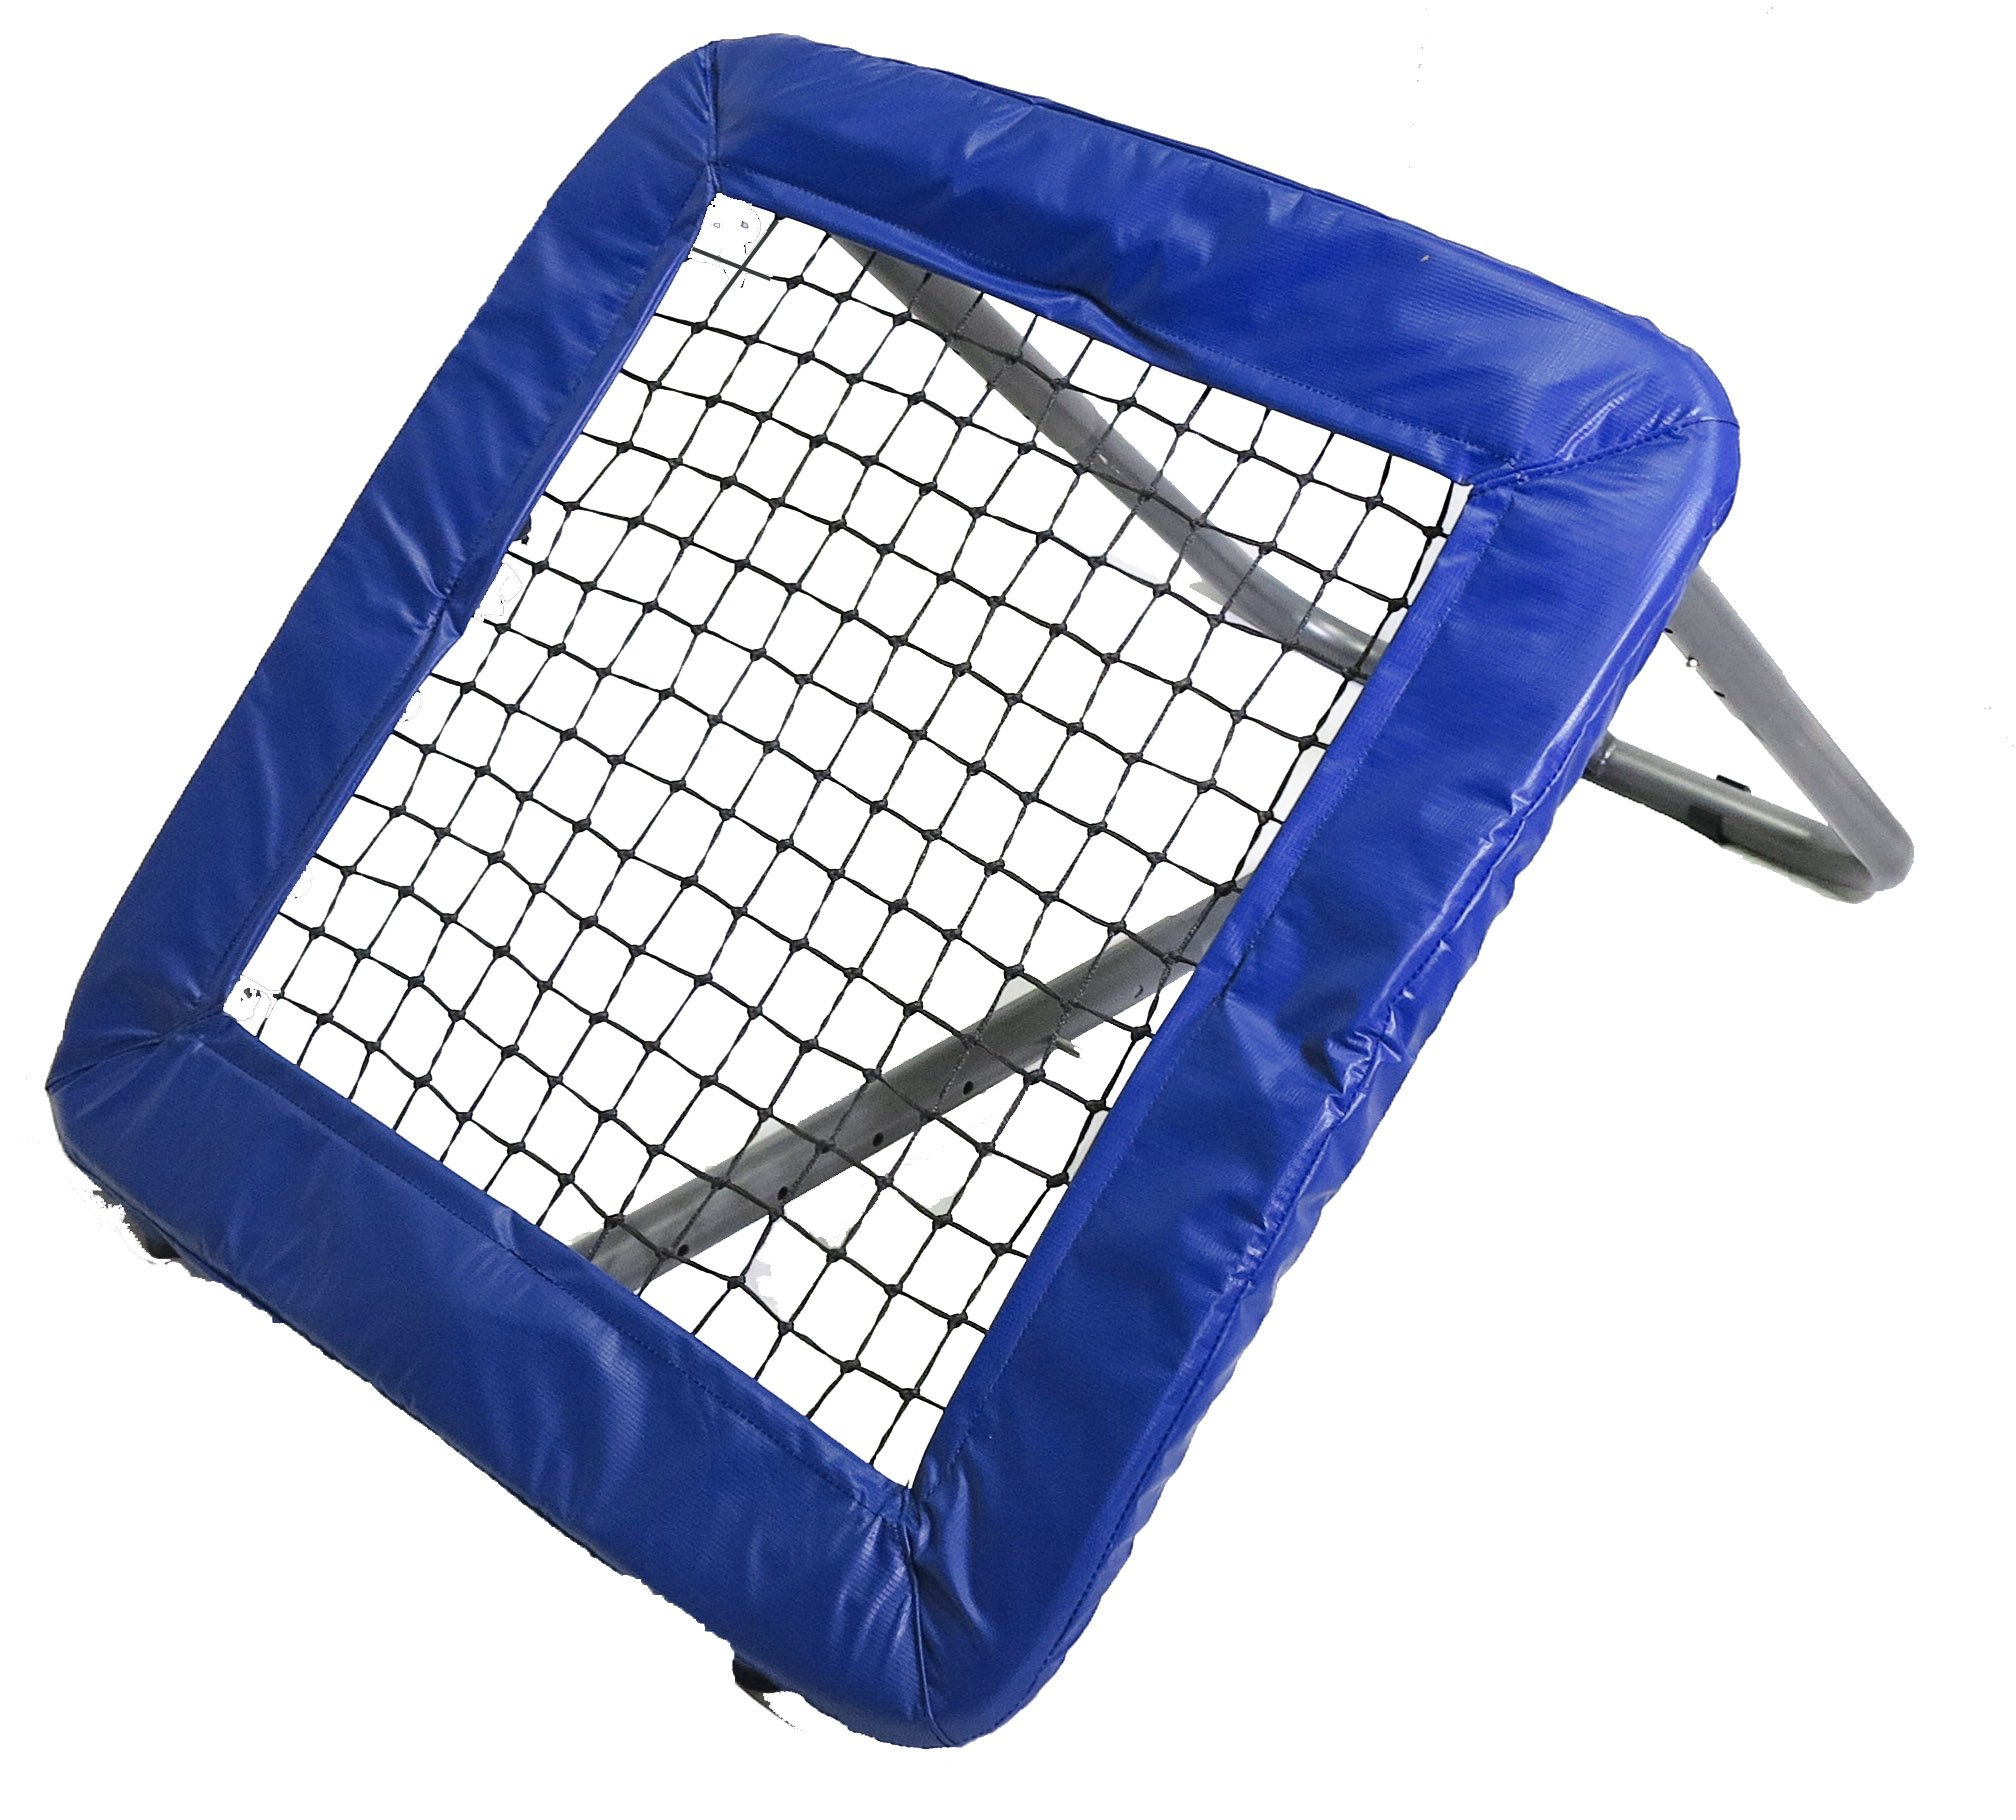 Multi-Sport Pitch-Back/Rebounder for Water Polo, Soccer, Volleyball & More